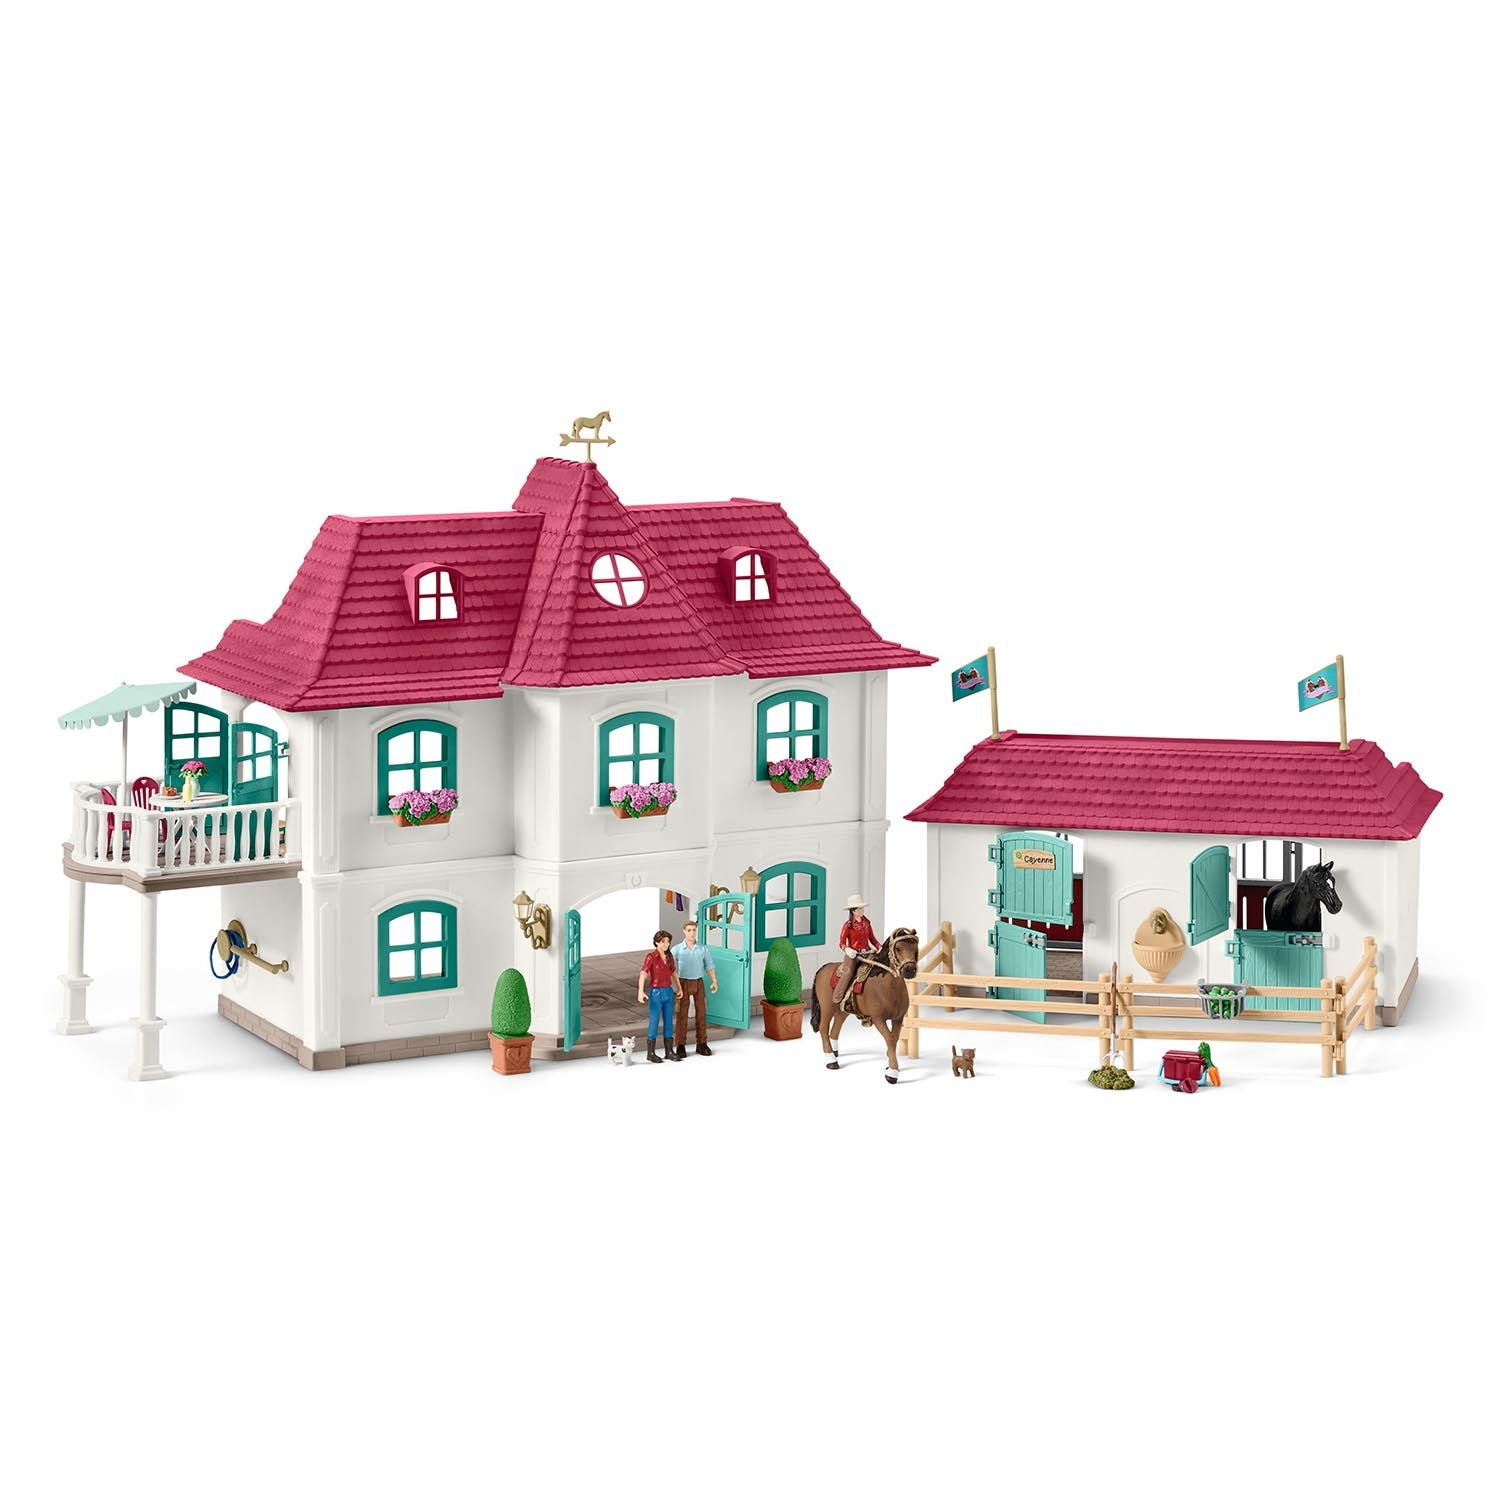 Schleich Large Horse Stable With House And Stable Inōstream Llc